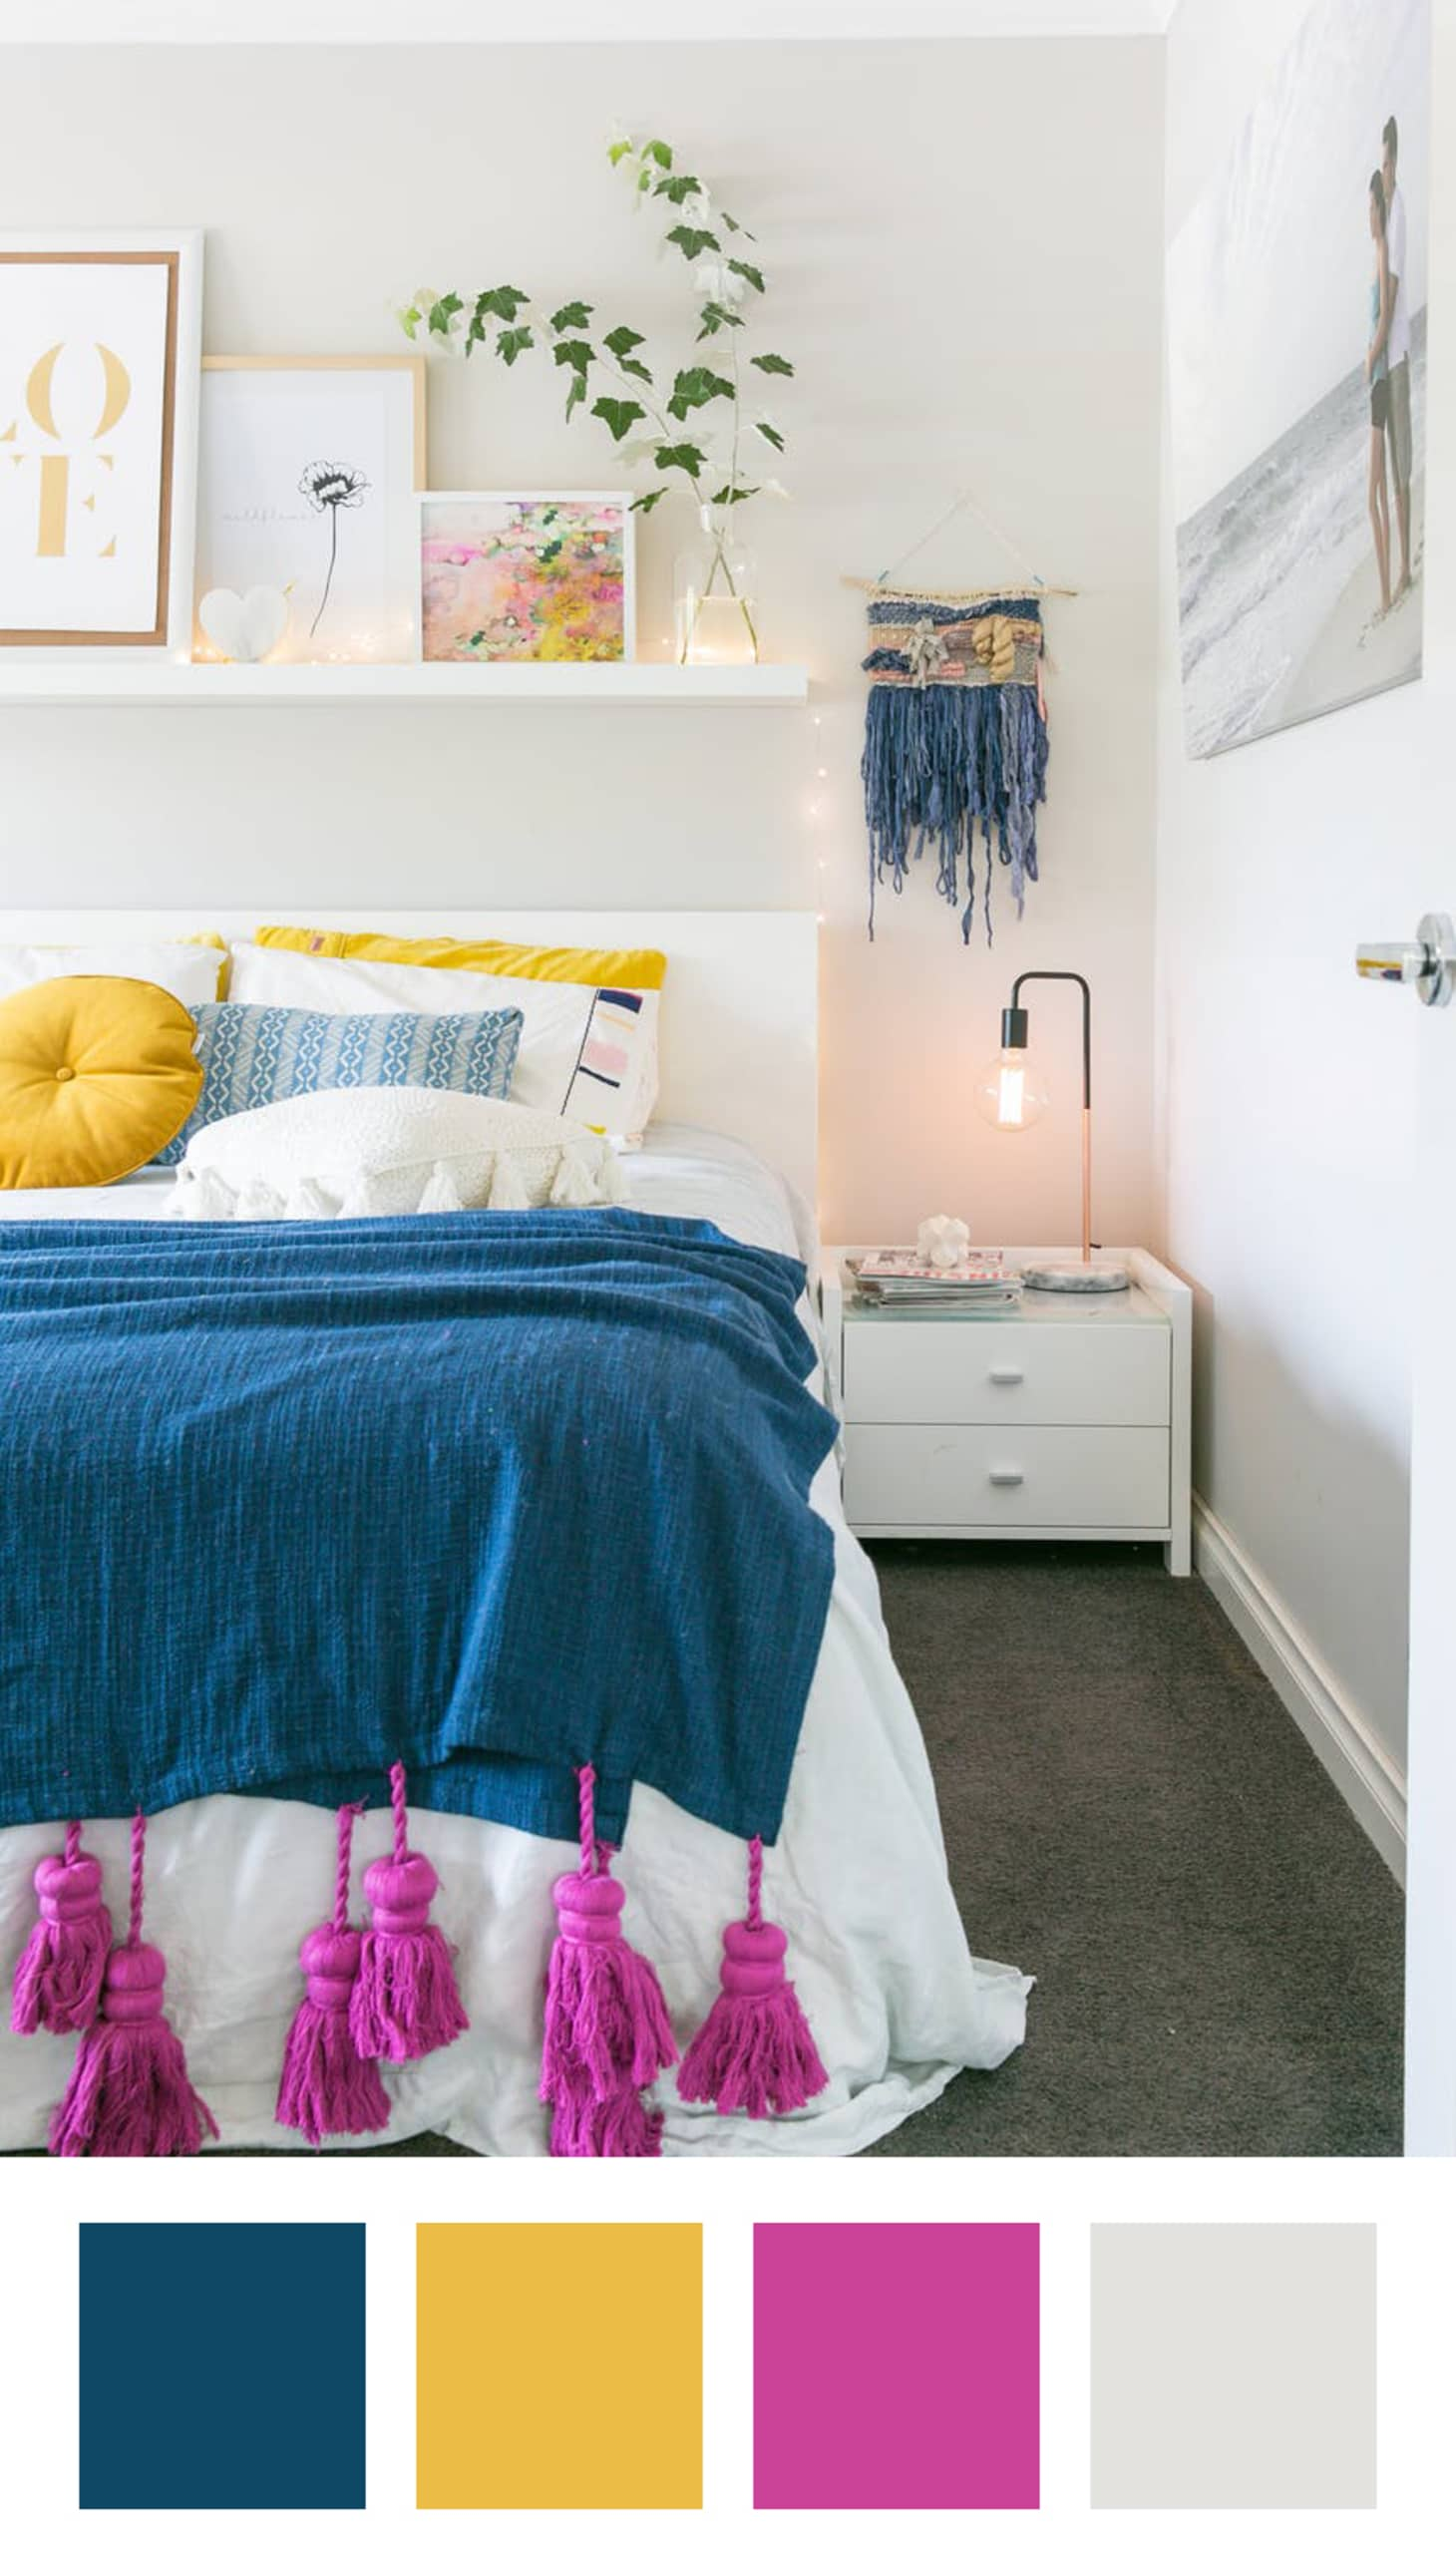 5 Ideas for Colors to Pair With Blue When Decorating ...